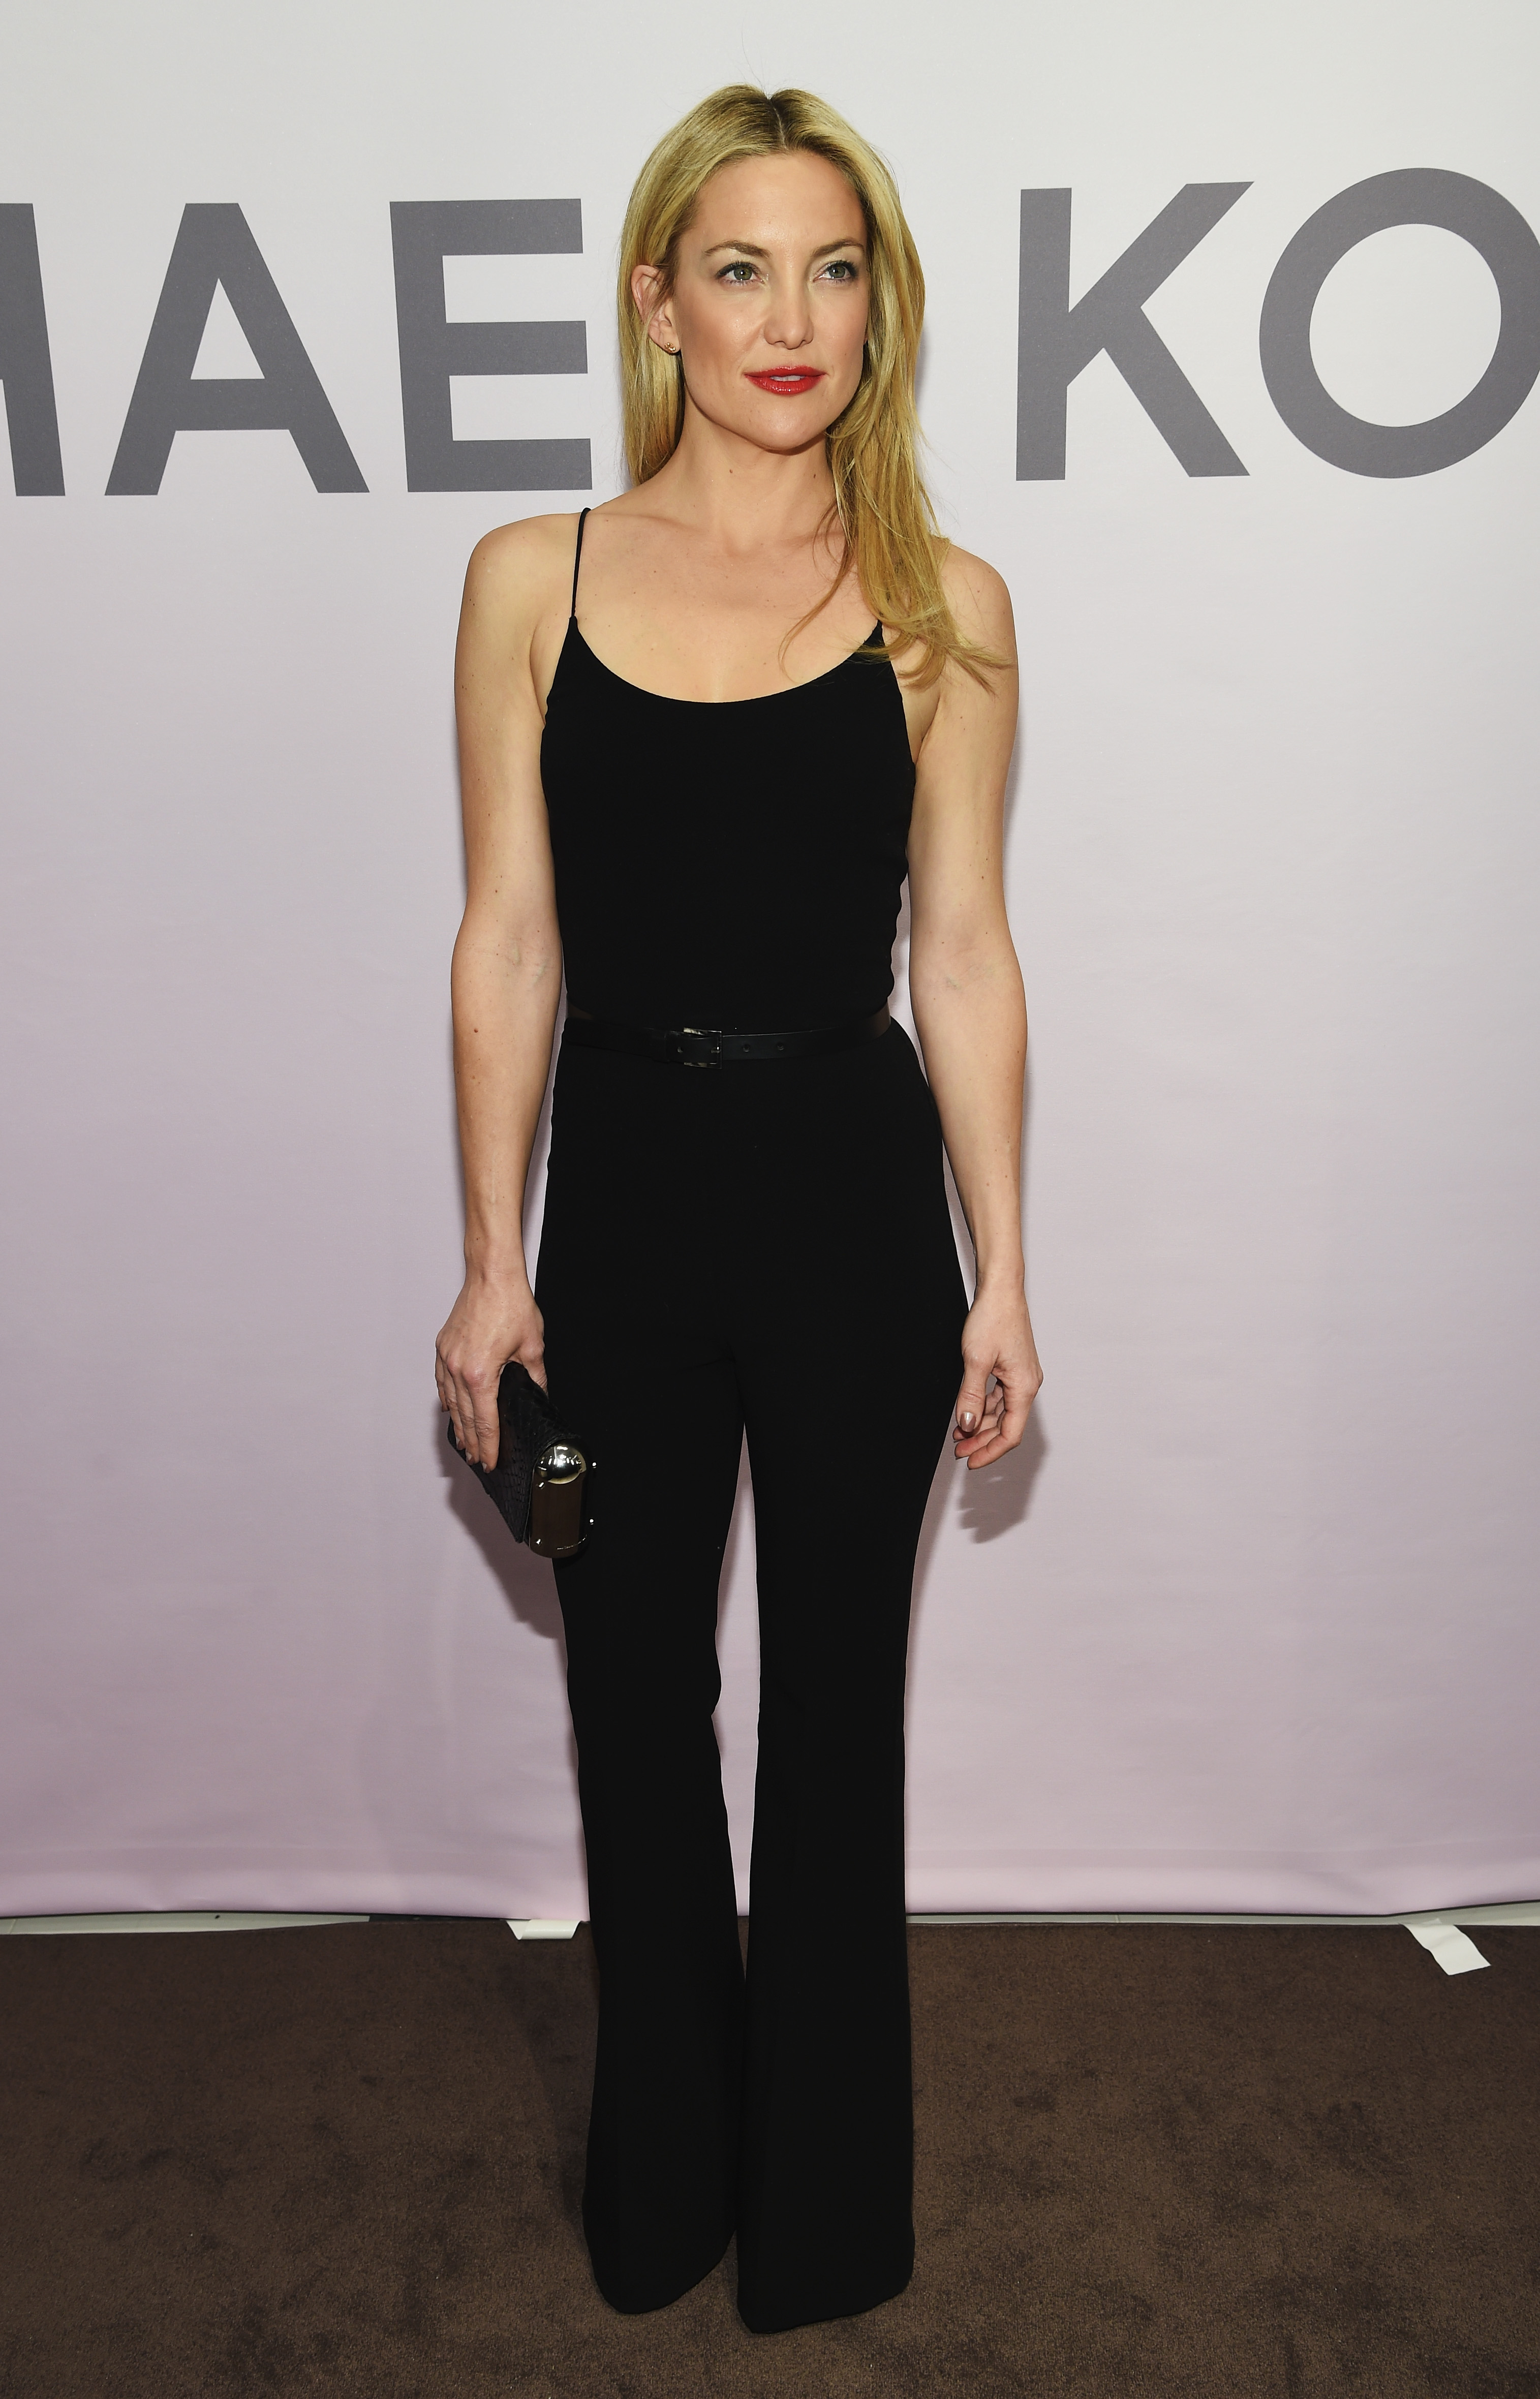 A mere glimpse at the human ray of sunshine known as Kate Hudson is almost as good as chatting with her (Photo: Getty).